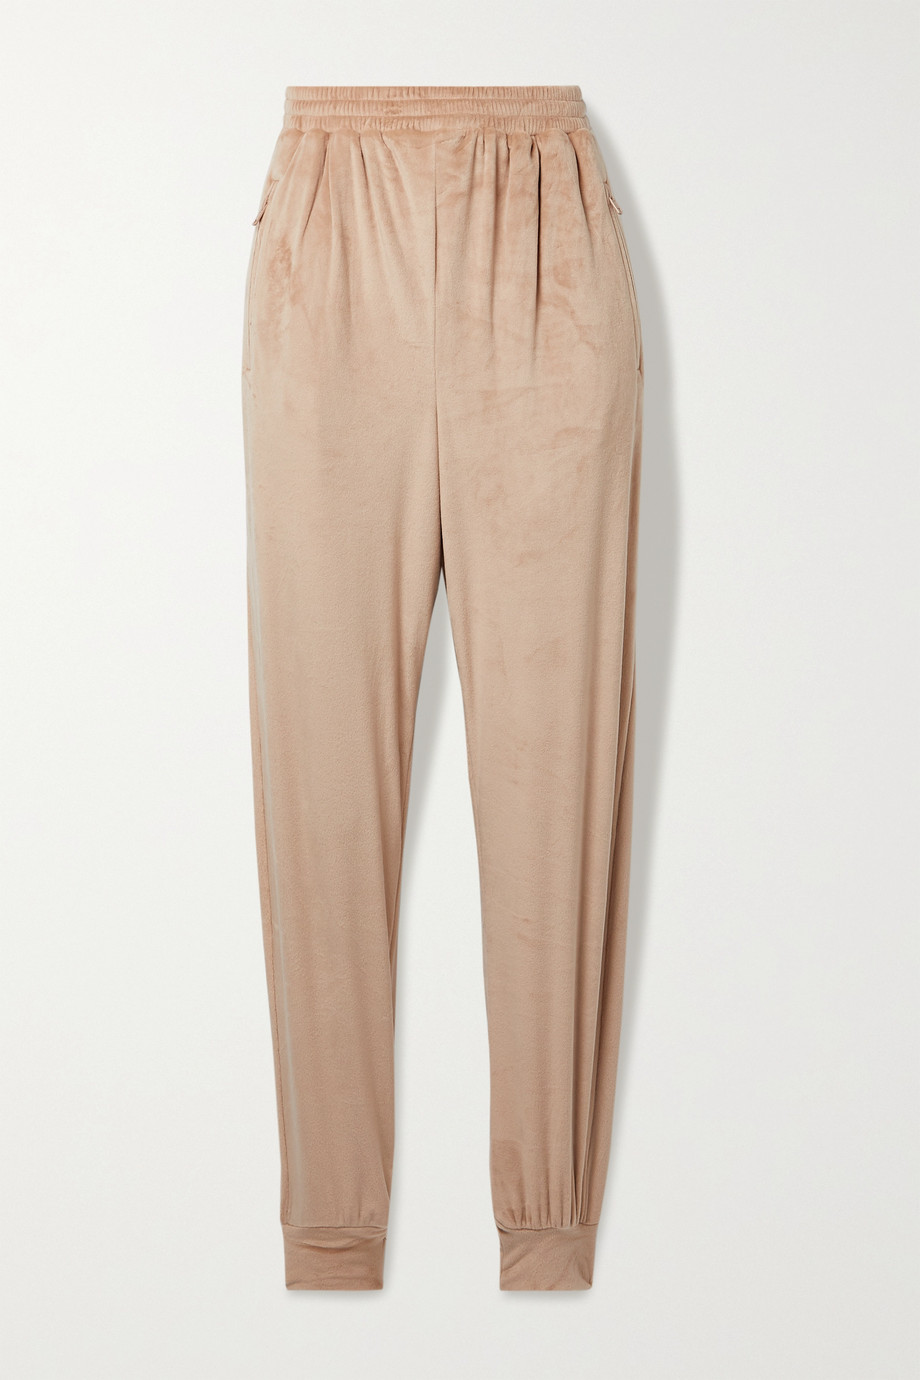 SKIMS Velour track pants - Honey